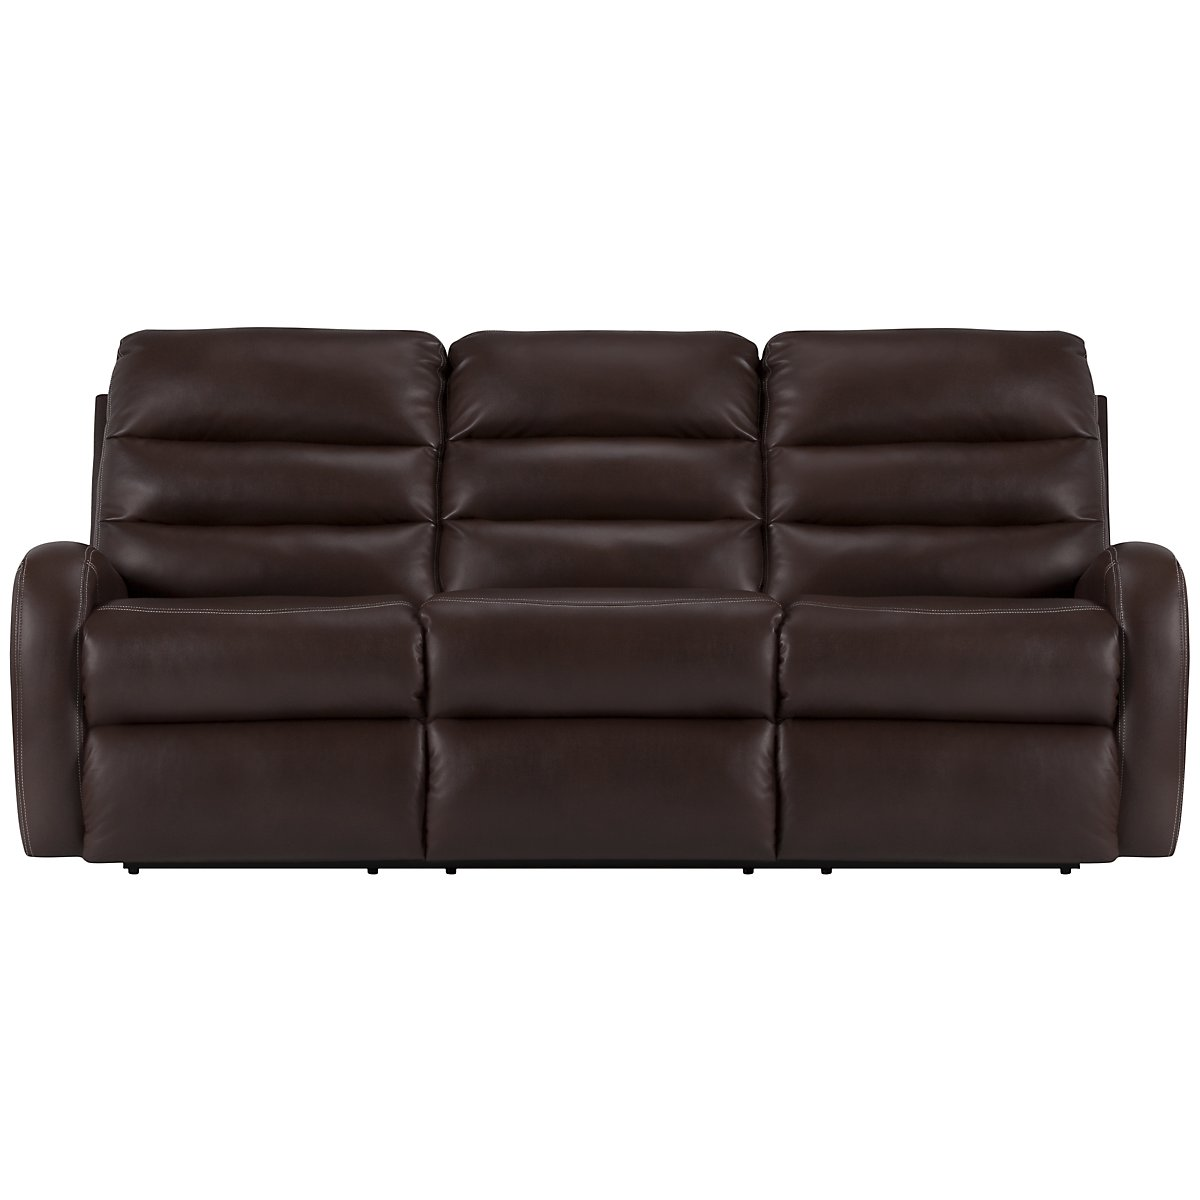 Carver Dark Brown Microfiber Reclining Sofa